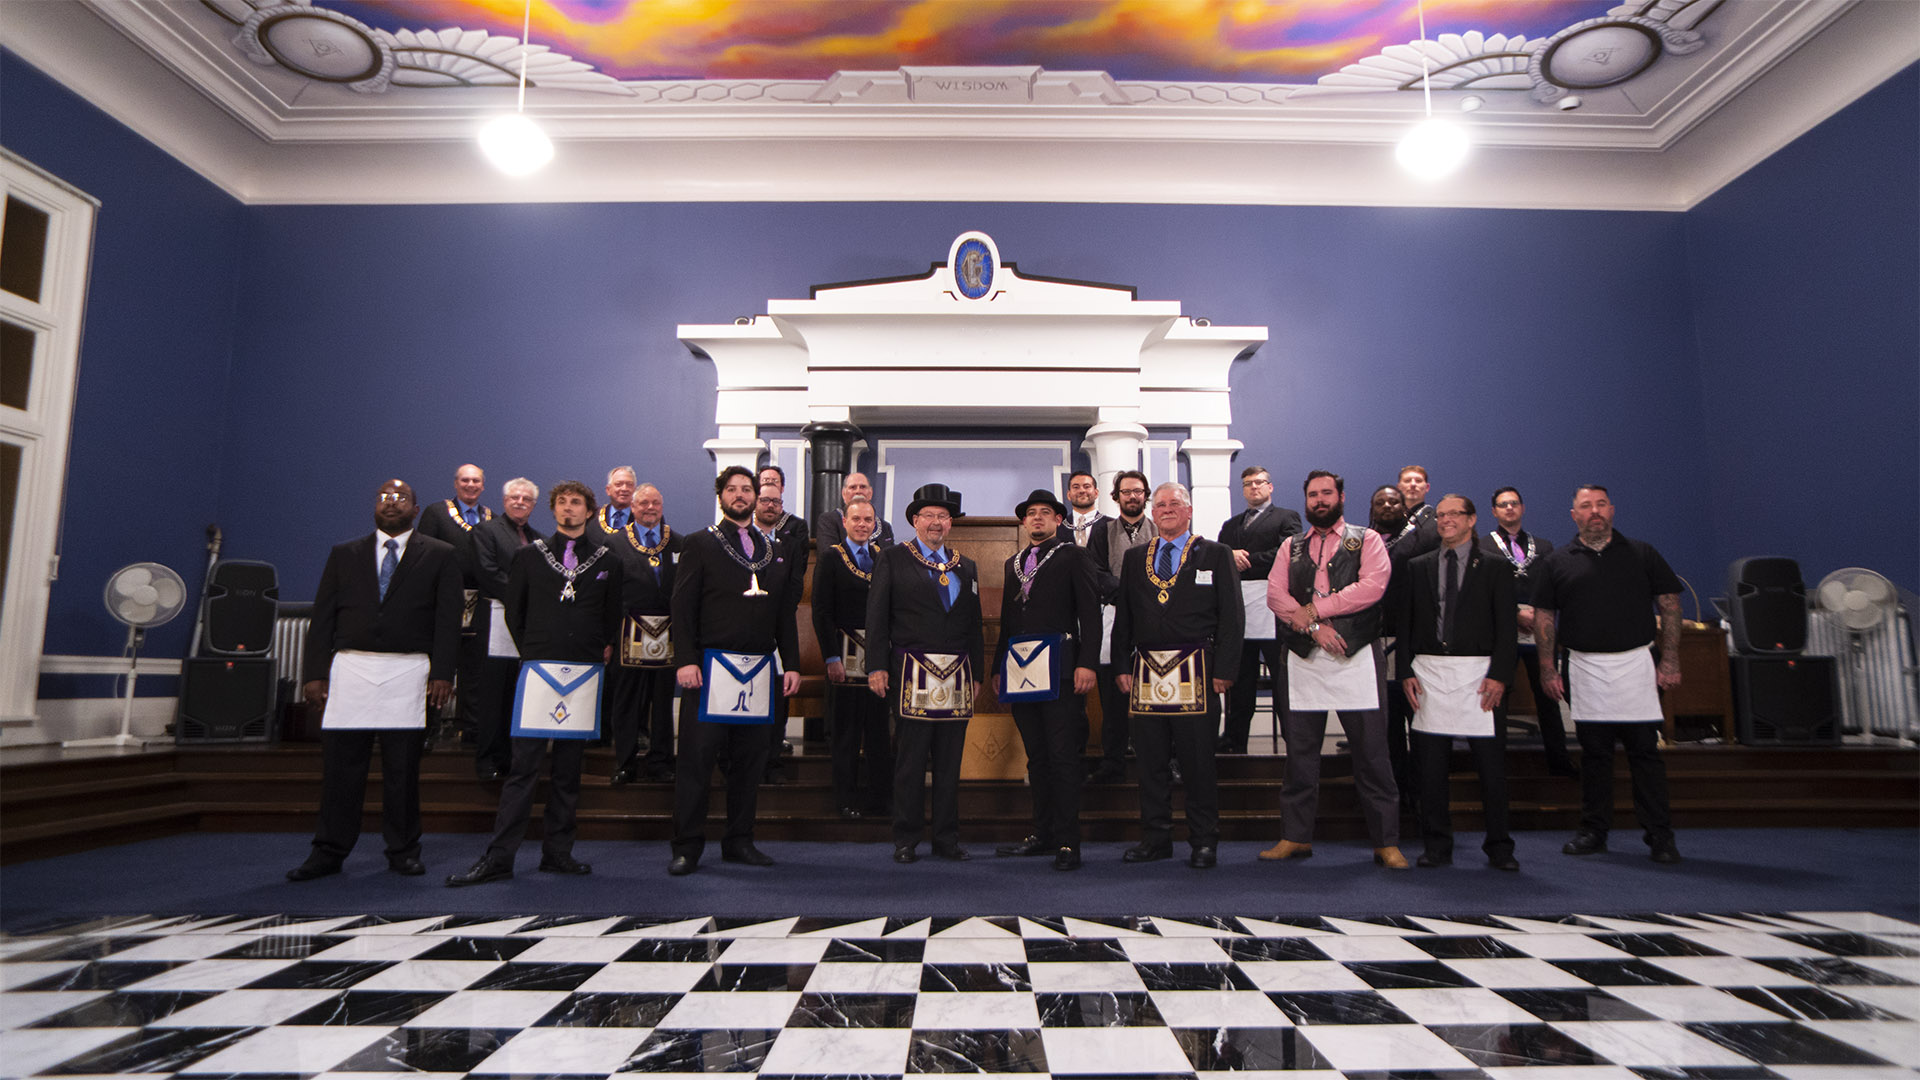 Grand Master's Visit - Official Pose